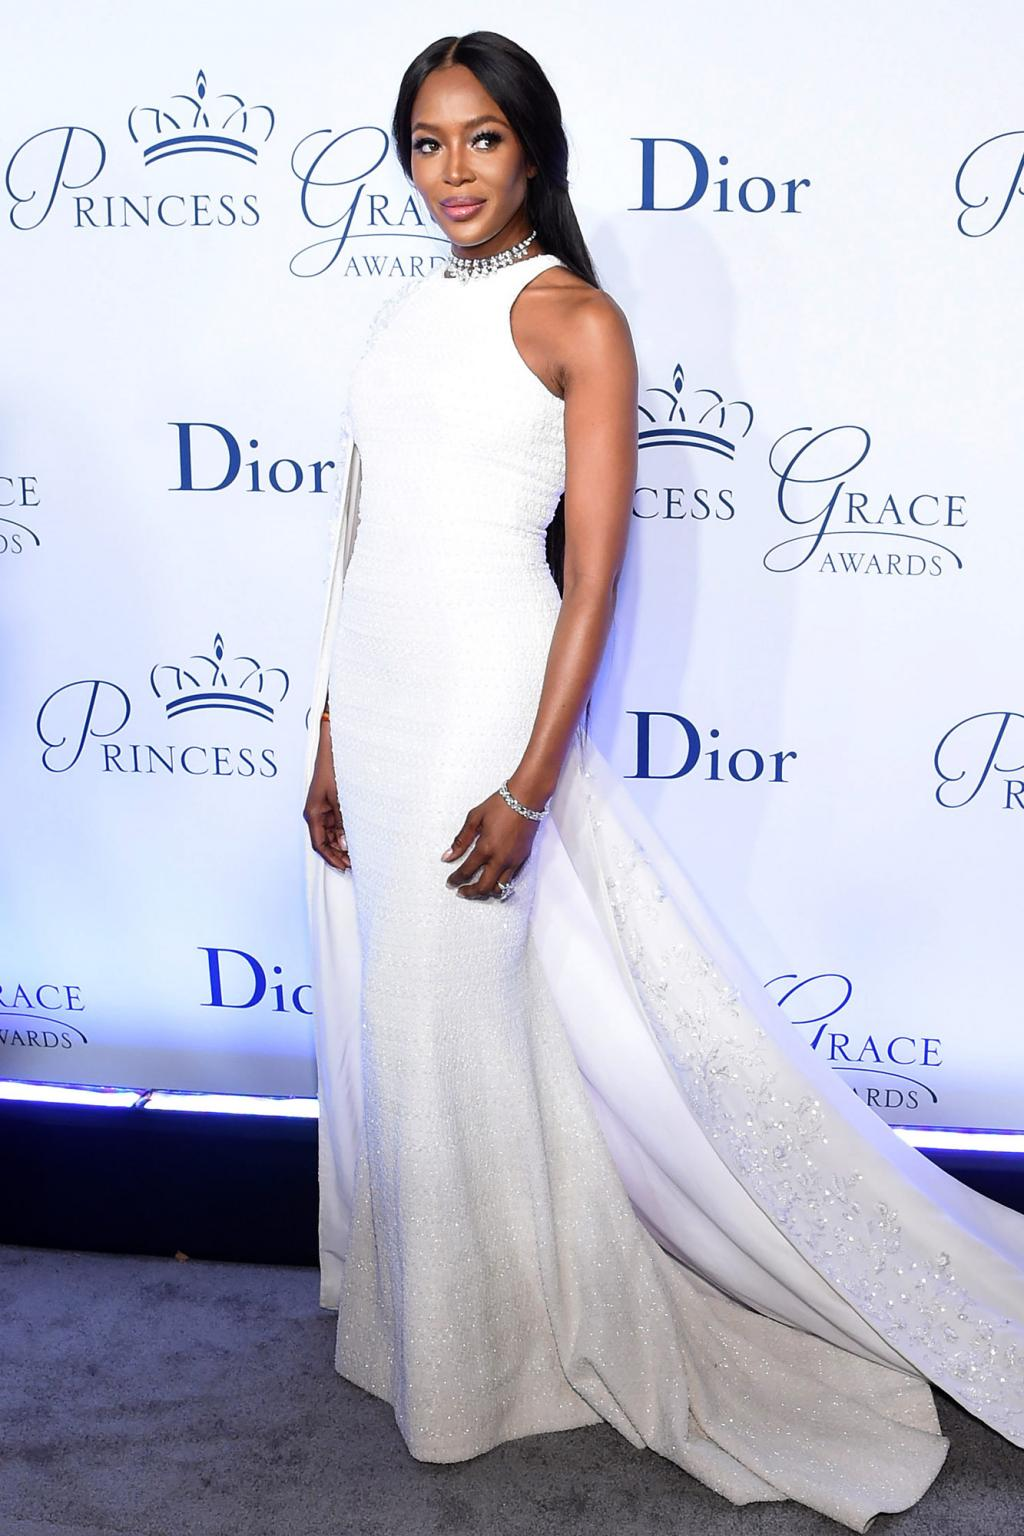 Naomi Campbell Looks Regal at the Princess Grace Awards Gala in N.Y.C.